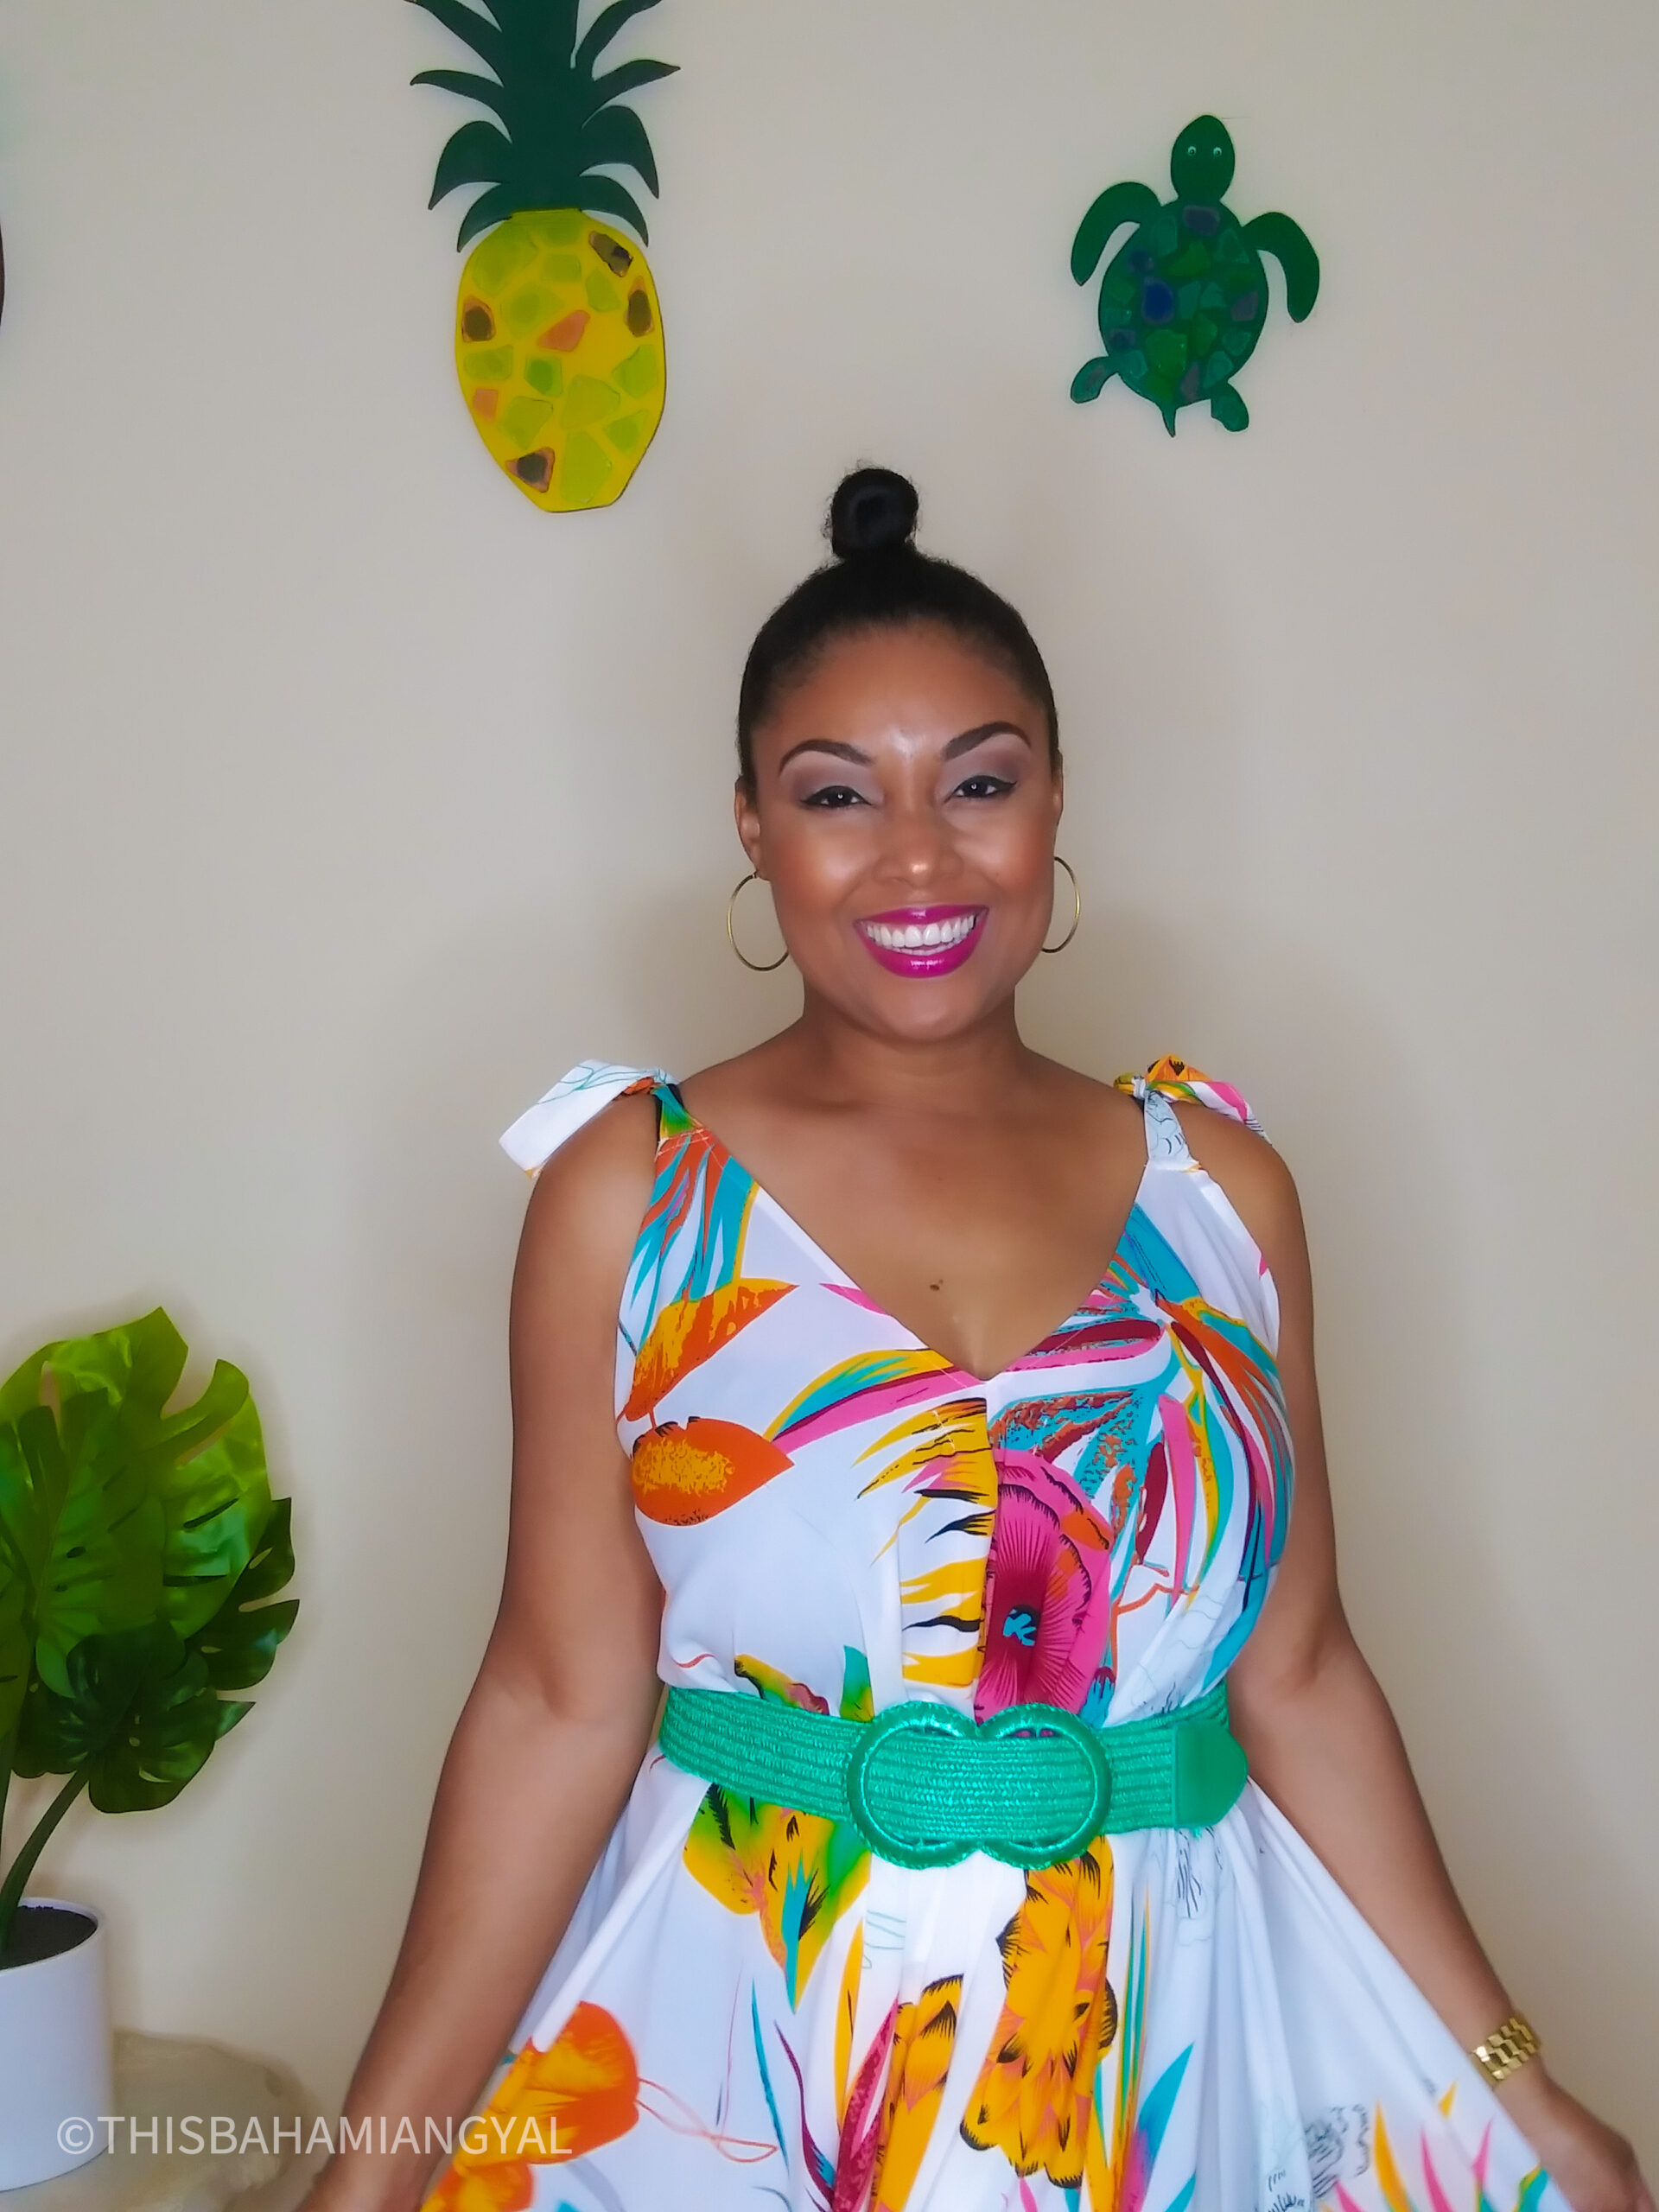 This Bahamian Gyal lifestyle and beauty blogger, Rogan Smith poses for the camera. She's wearing a colourful tropical romper with a green belt.